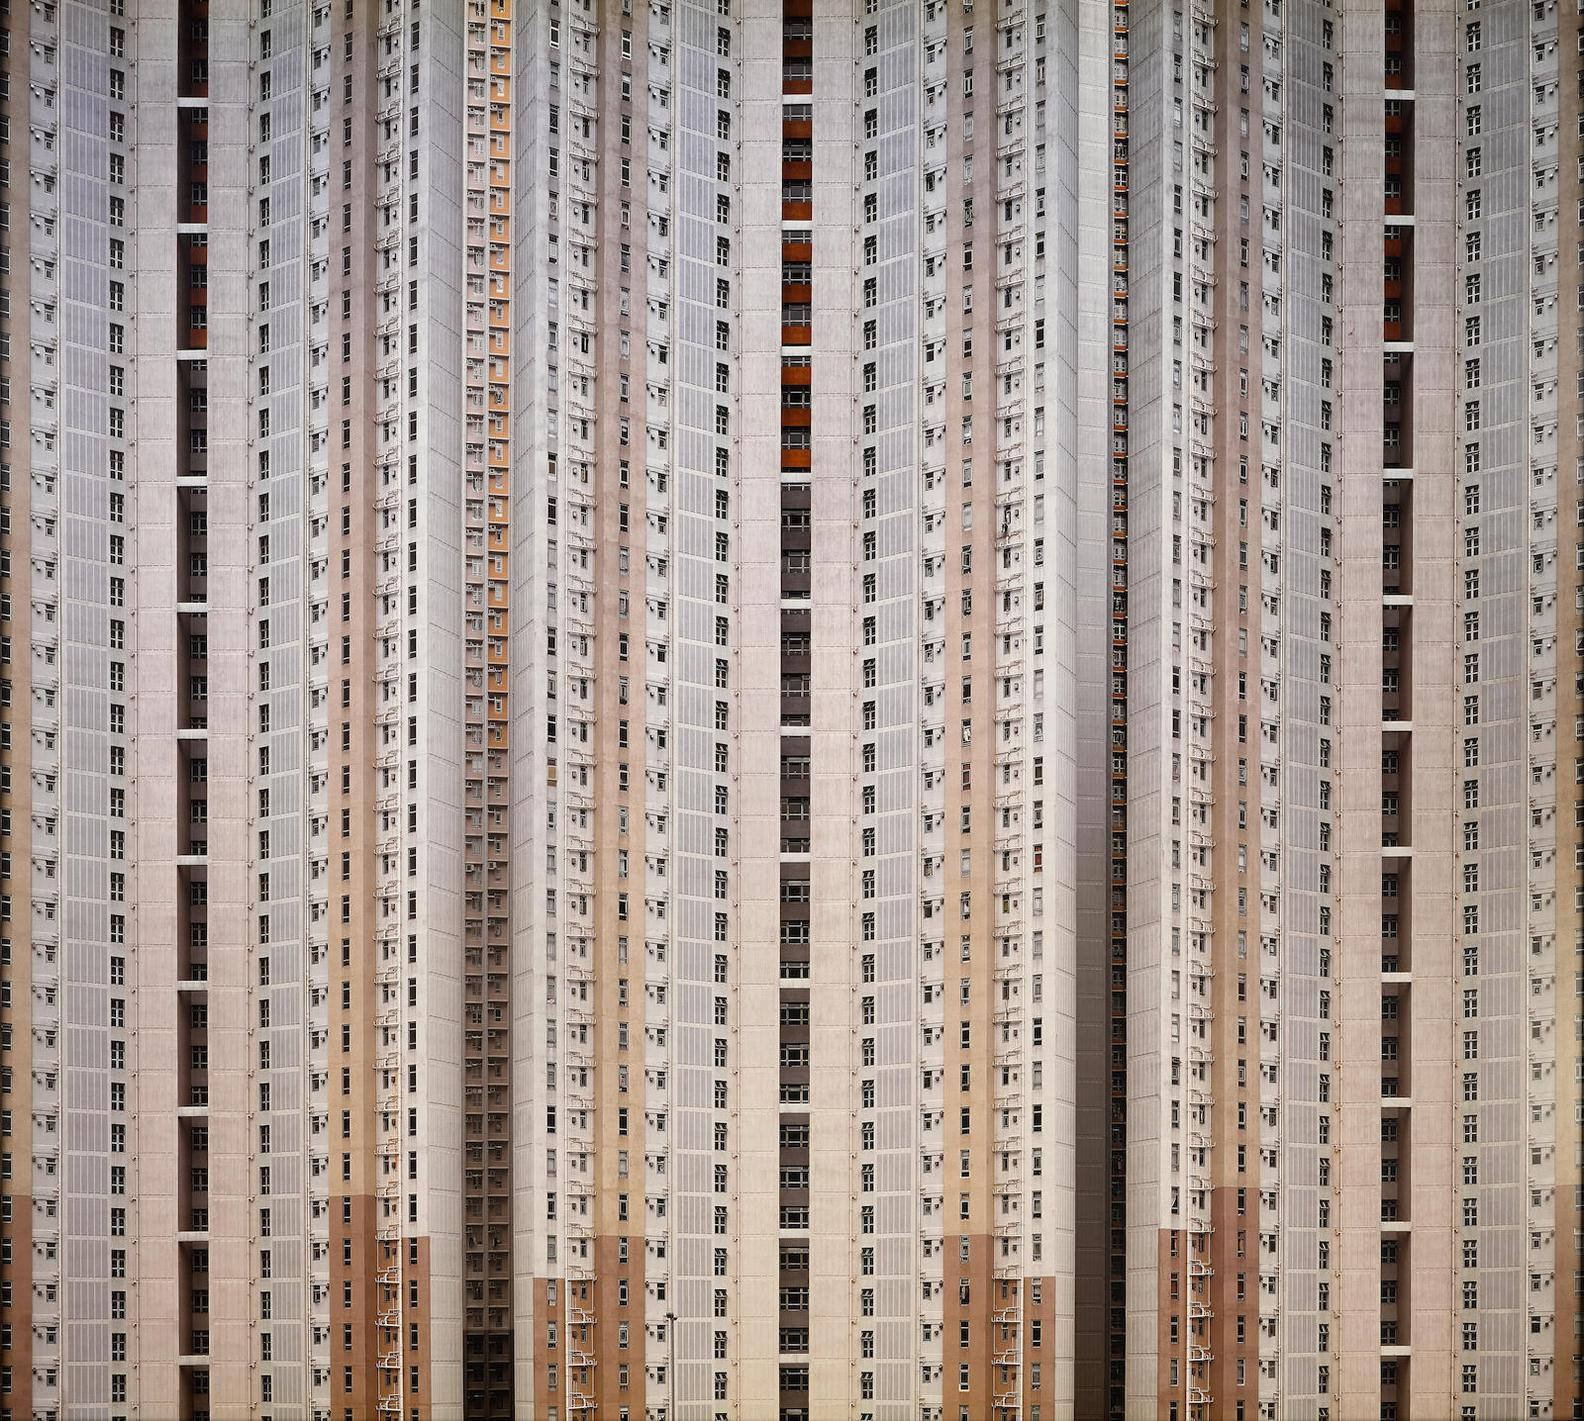 Michael Wolf-Architecture Of Density #23, Hong Kong-2004